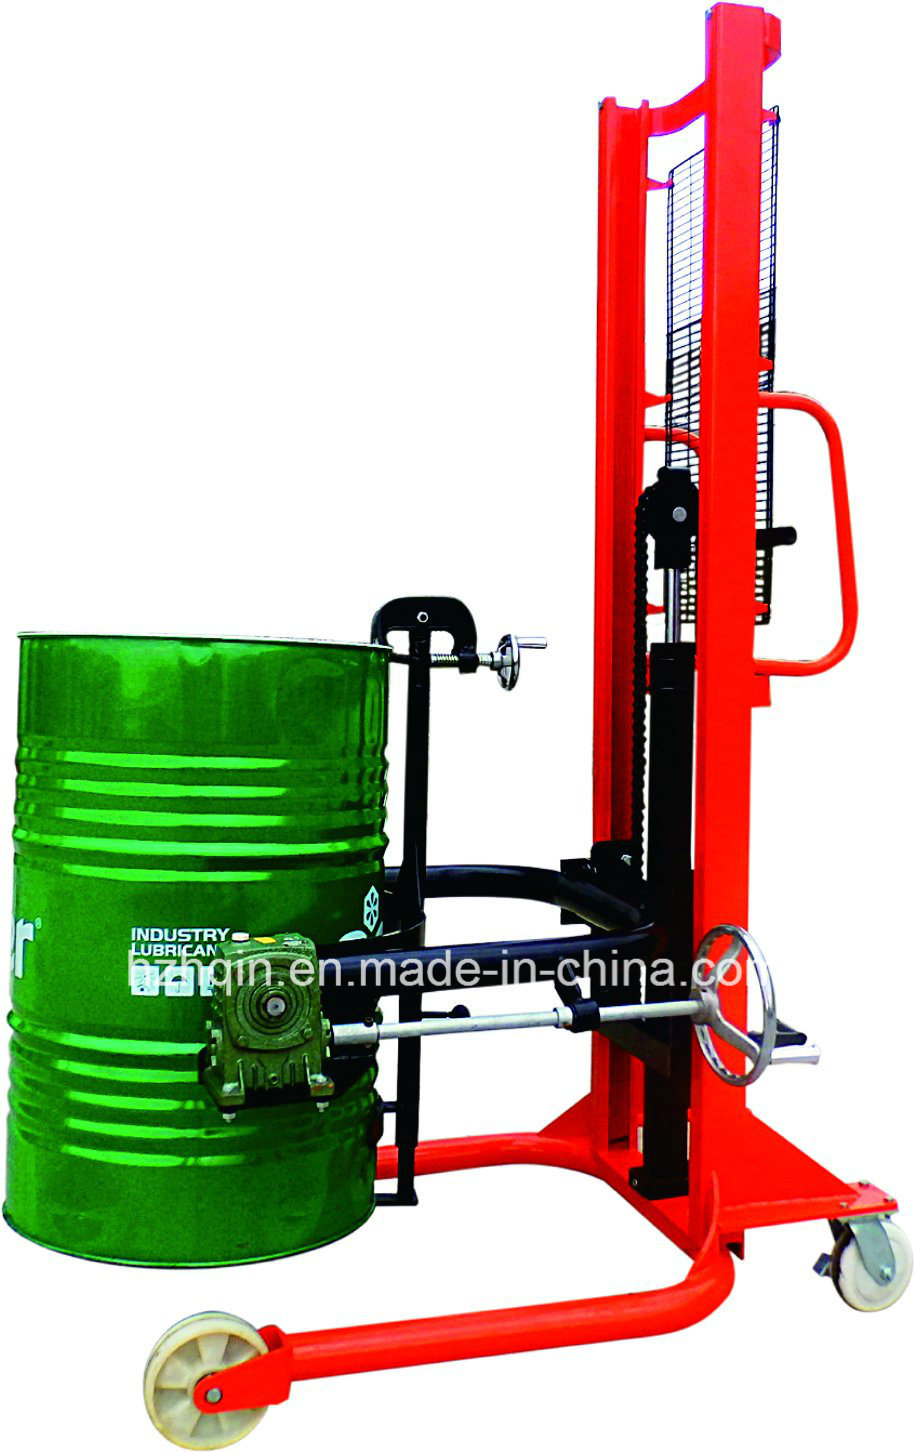 China Niuli High Quality Handing 0.35t Oil Drum Lifter with ...